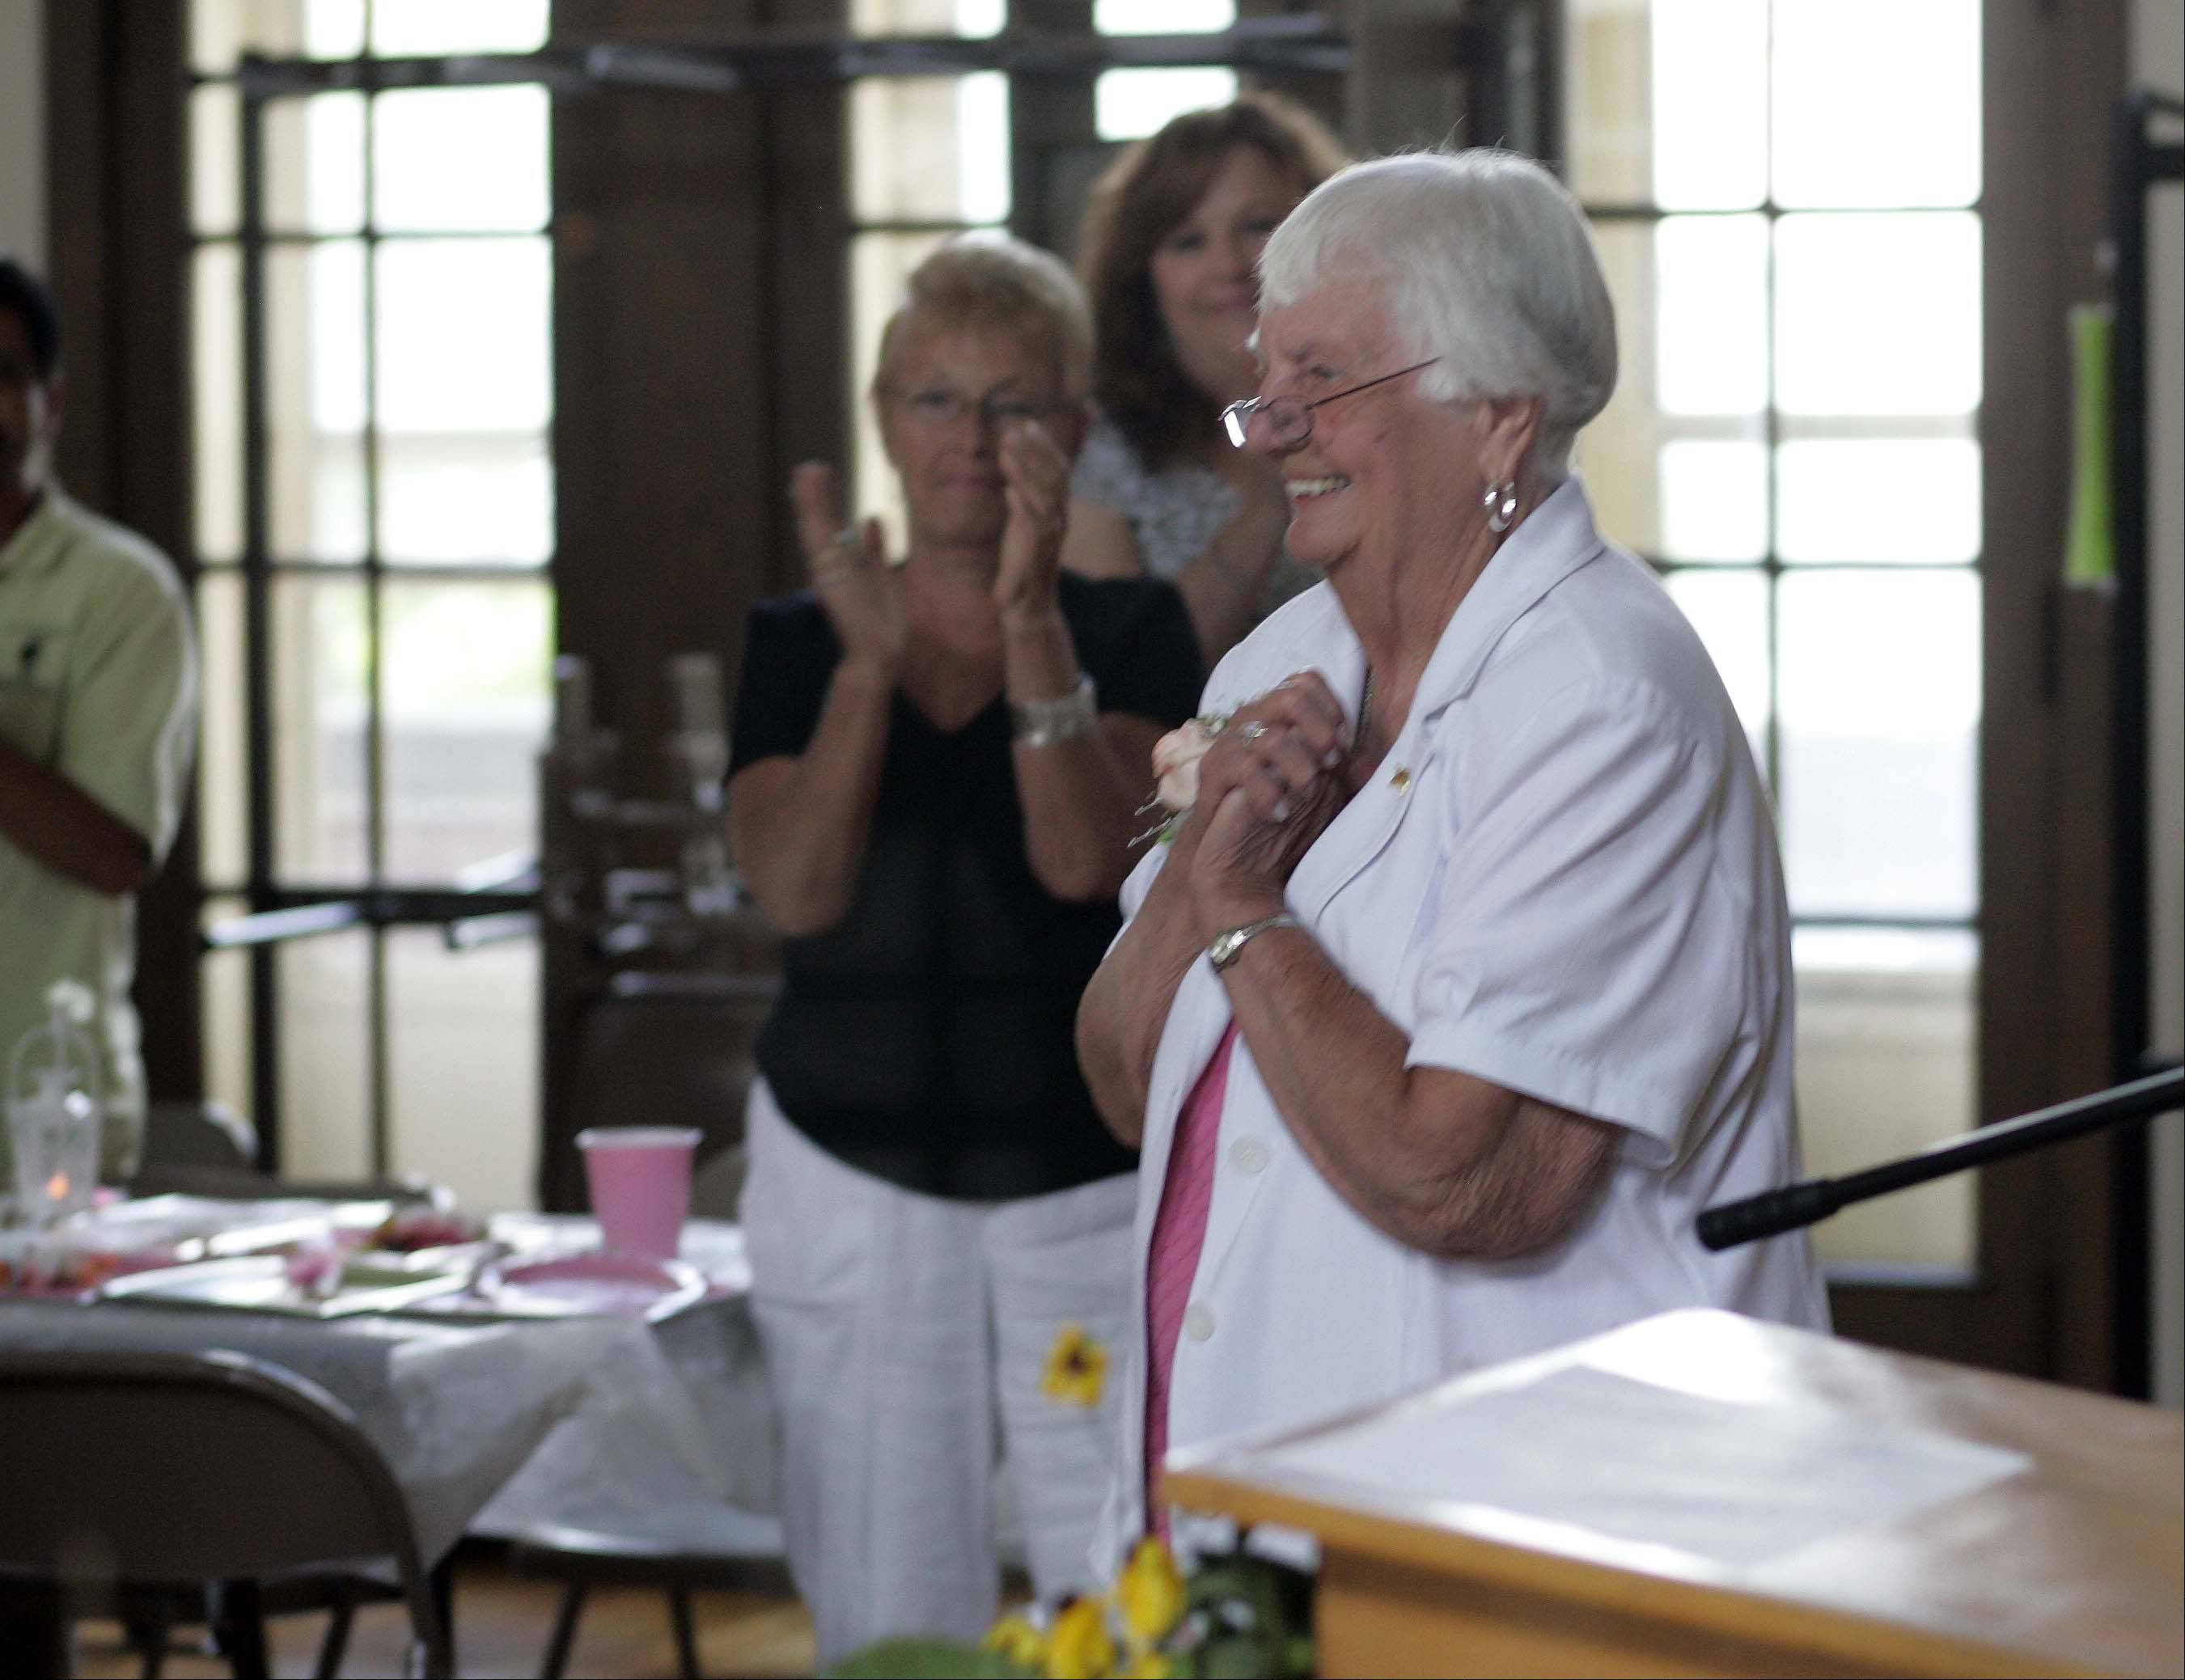 Carol Glemza, 87, will retire Sept. 1 after working for the St. Charles Park District for 69 years. Glemza was honored Friday with a retirement party at the Baker Community Center. Here she is overwhelmed by a standing ovation at the end of her retirement lunch.